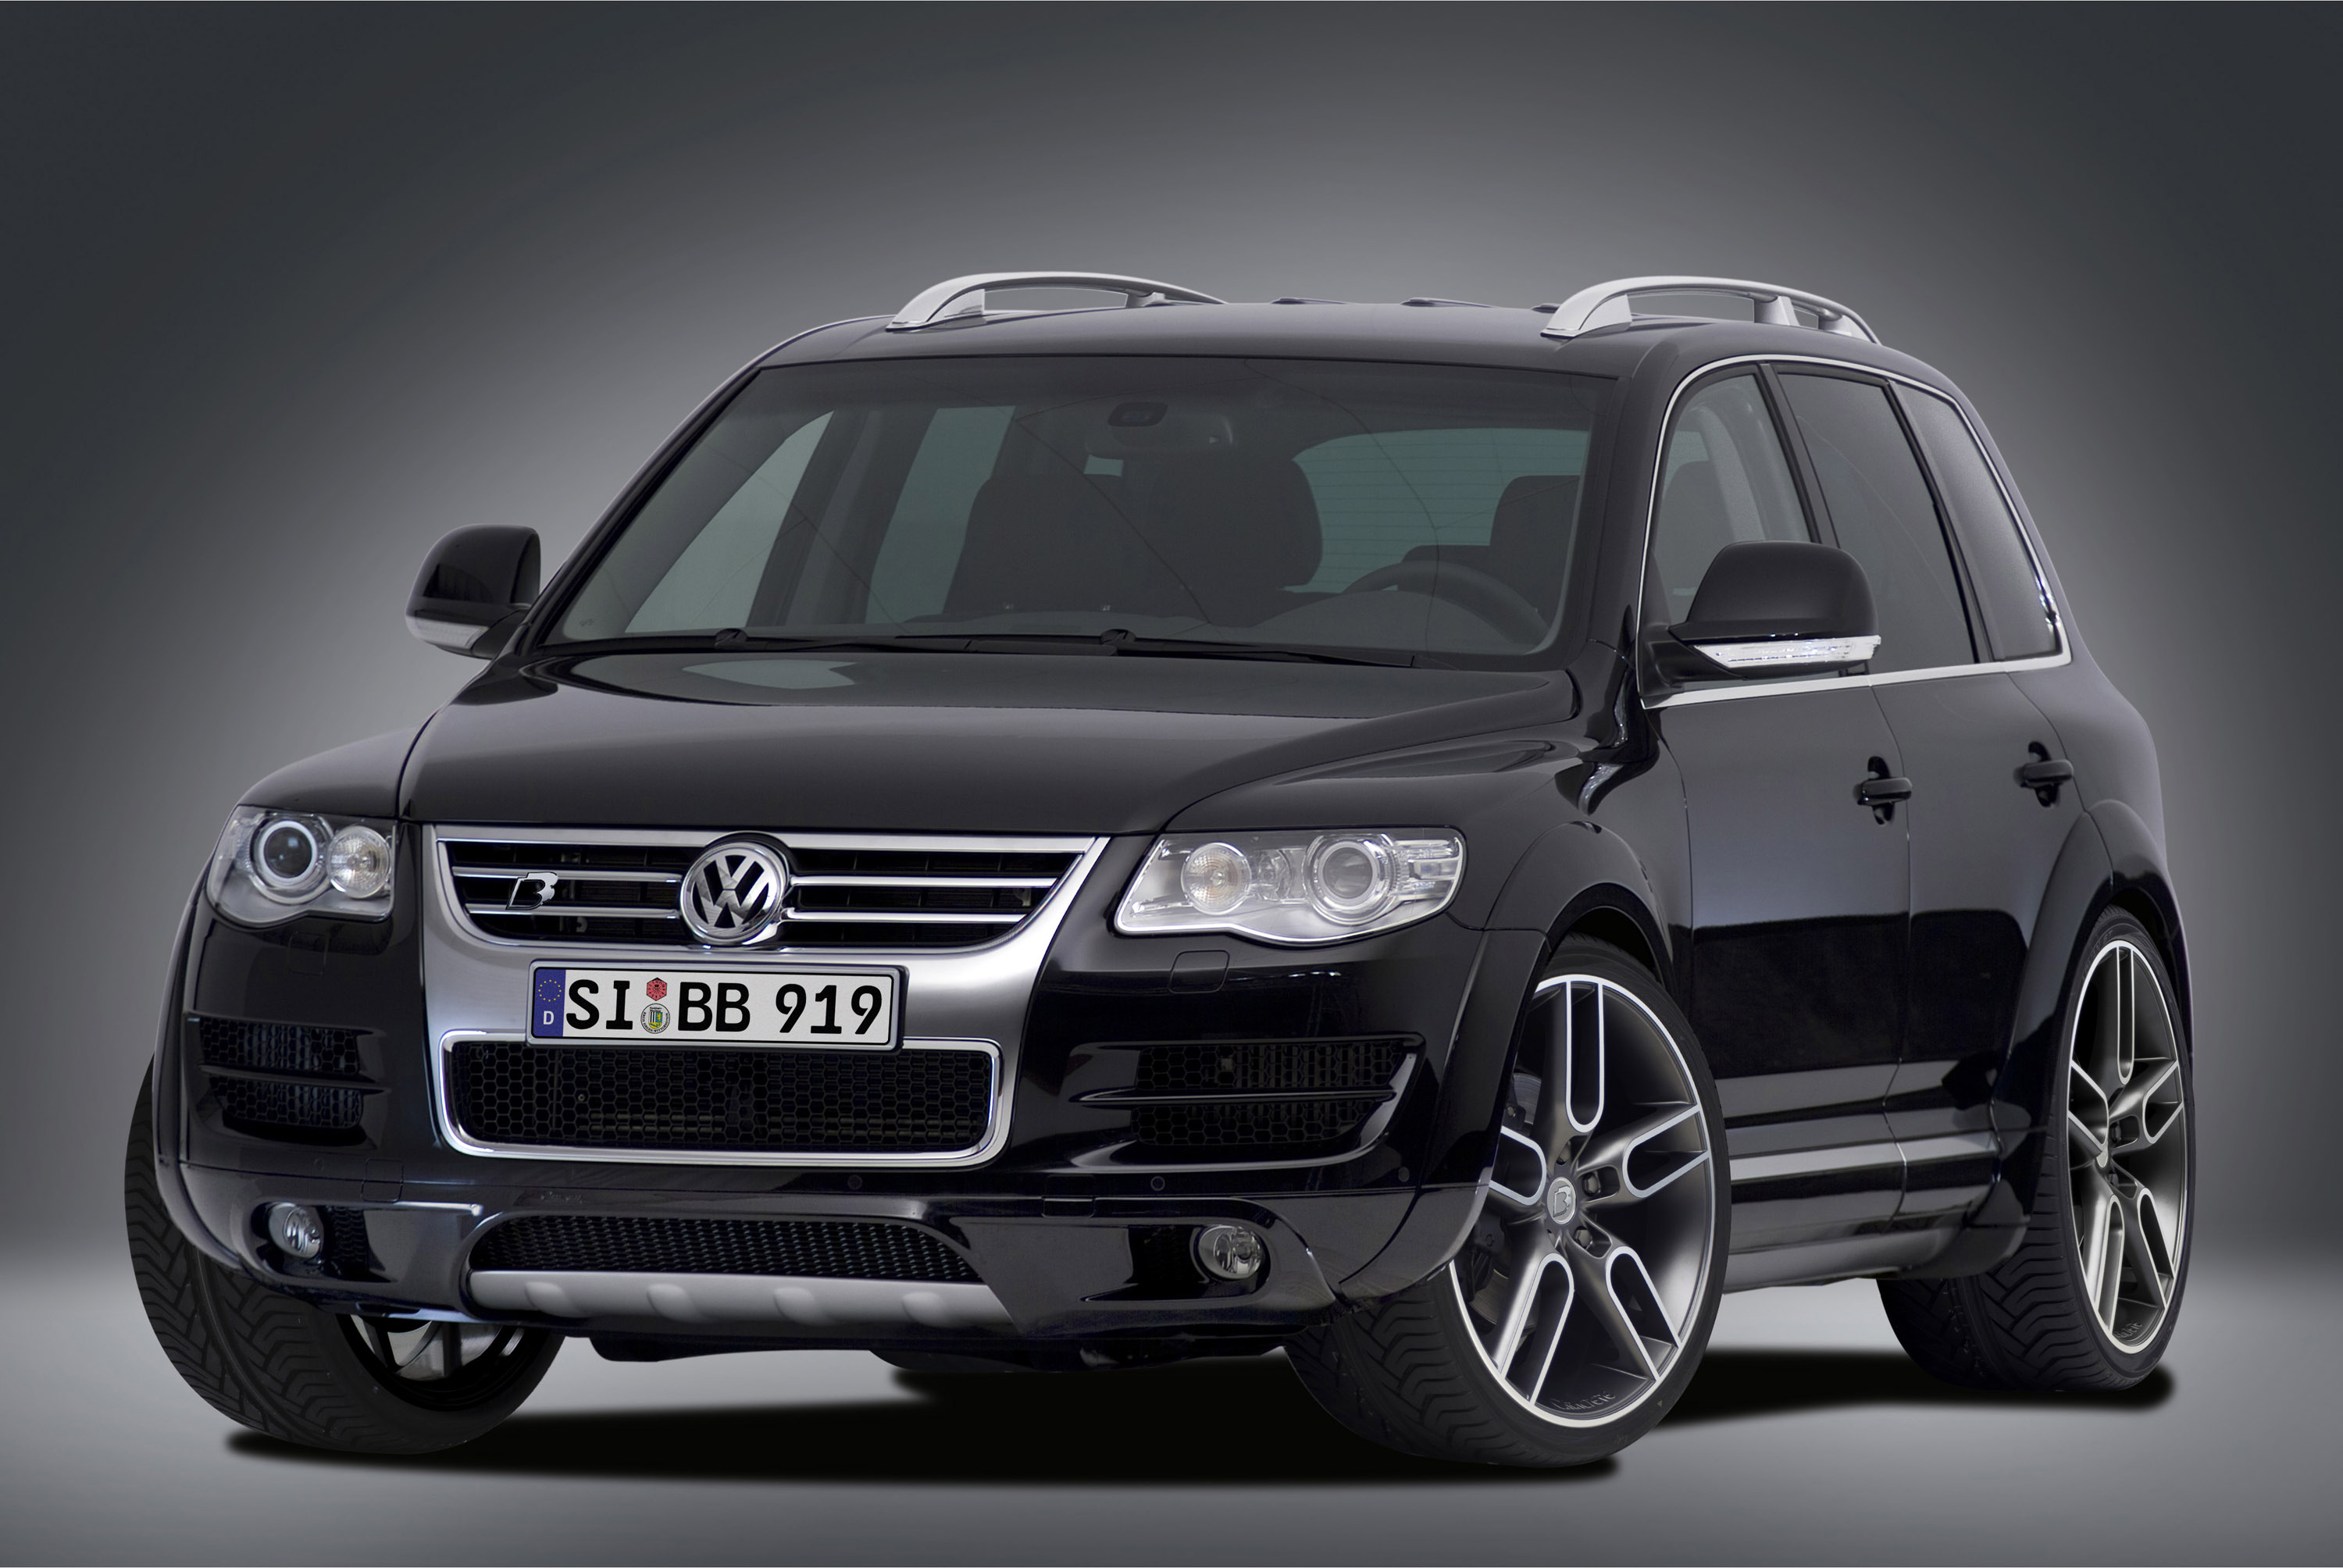 2012 volkswagen touareg review edmunds autos post. Black Bedroom Furniture Sets. Home Design Ideas